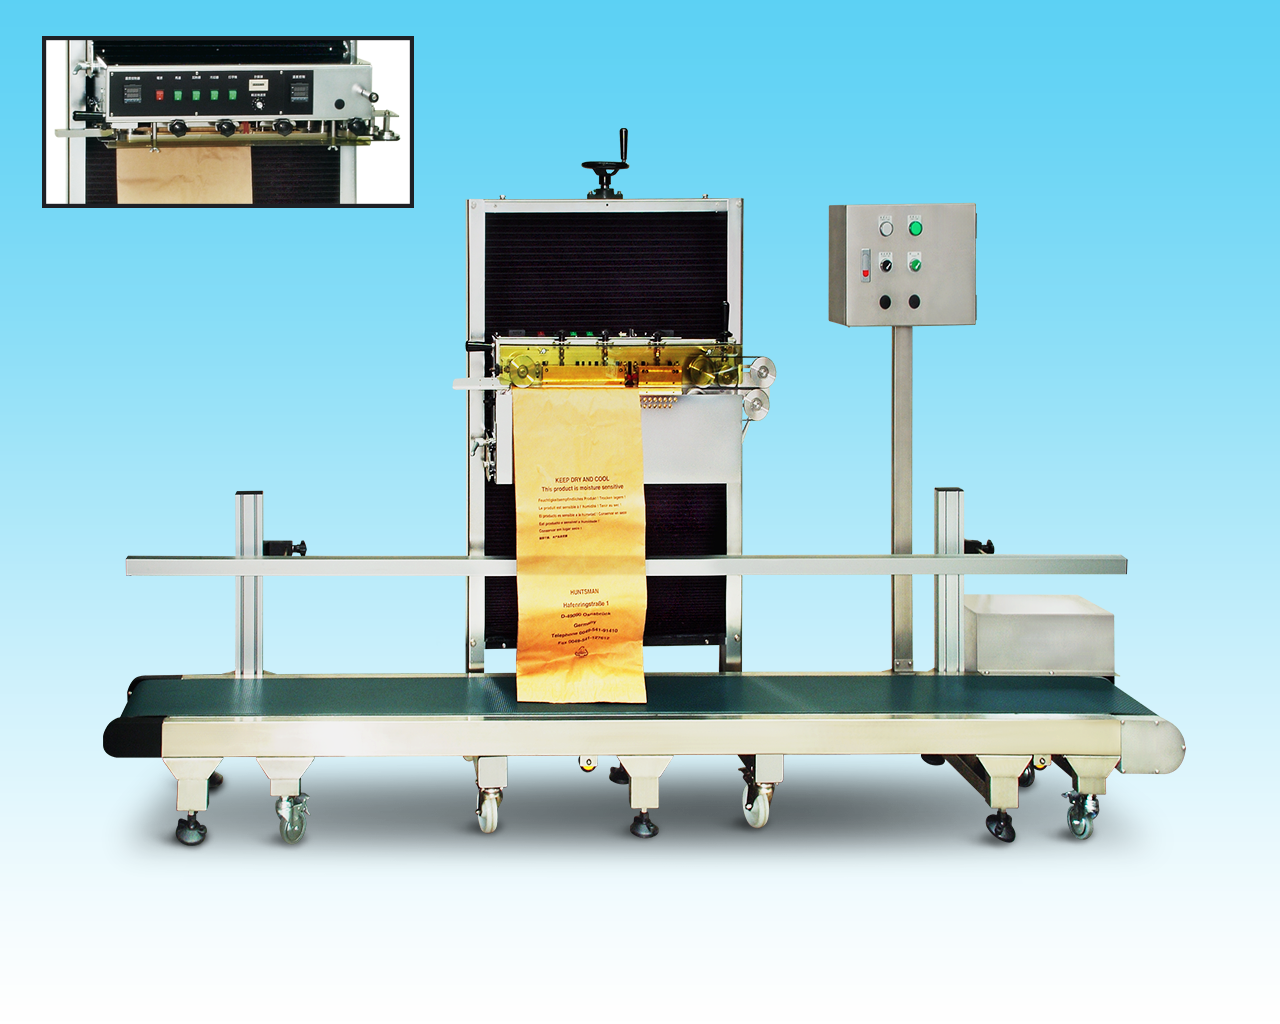 band sealing、band sealer、sealing packaging、sealing packaging machine、sealing machinery、sealer machine